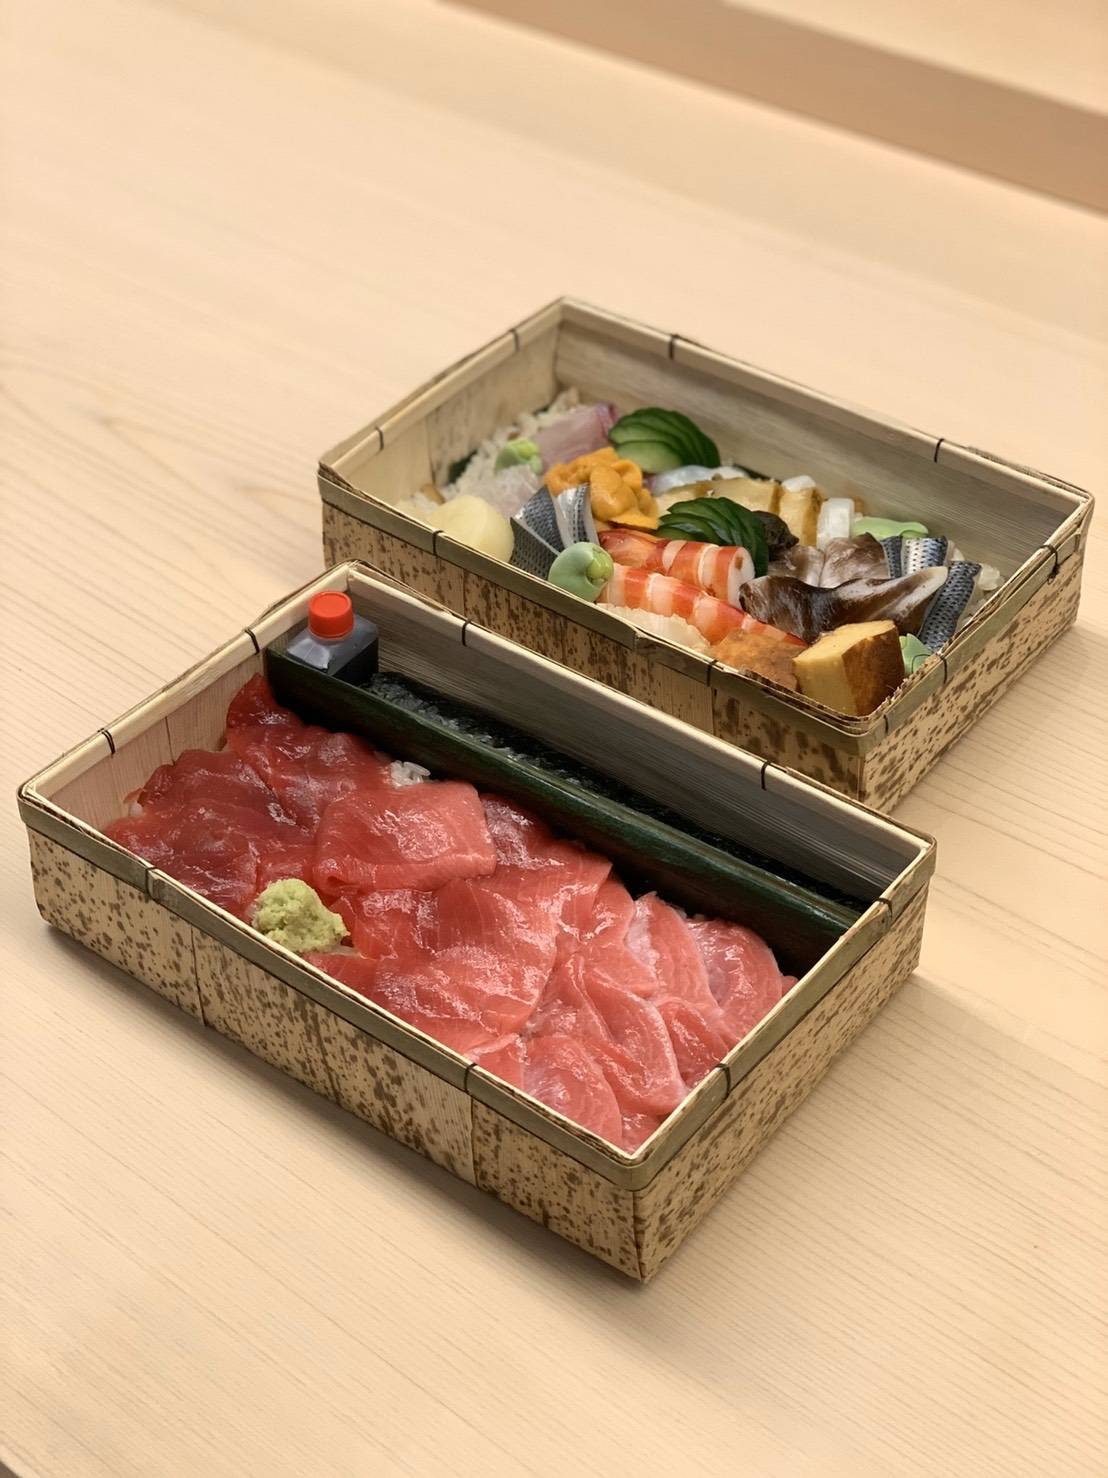 STAY HOME Kiyota (Takeaway)'s images2